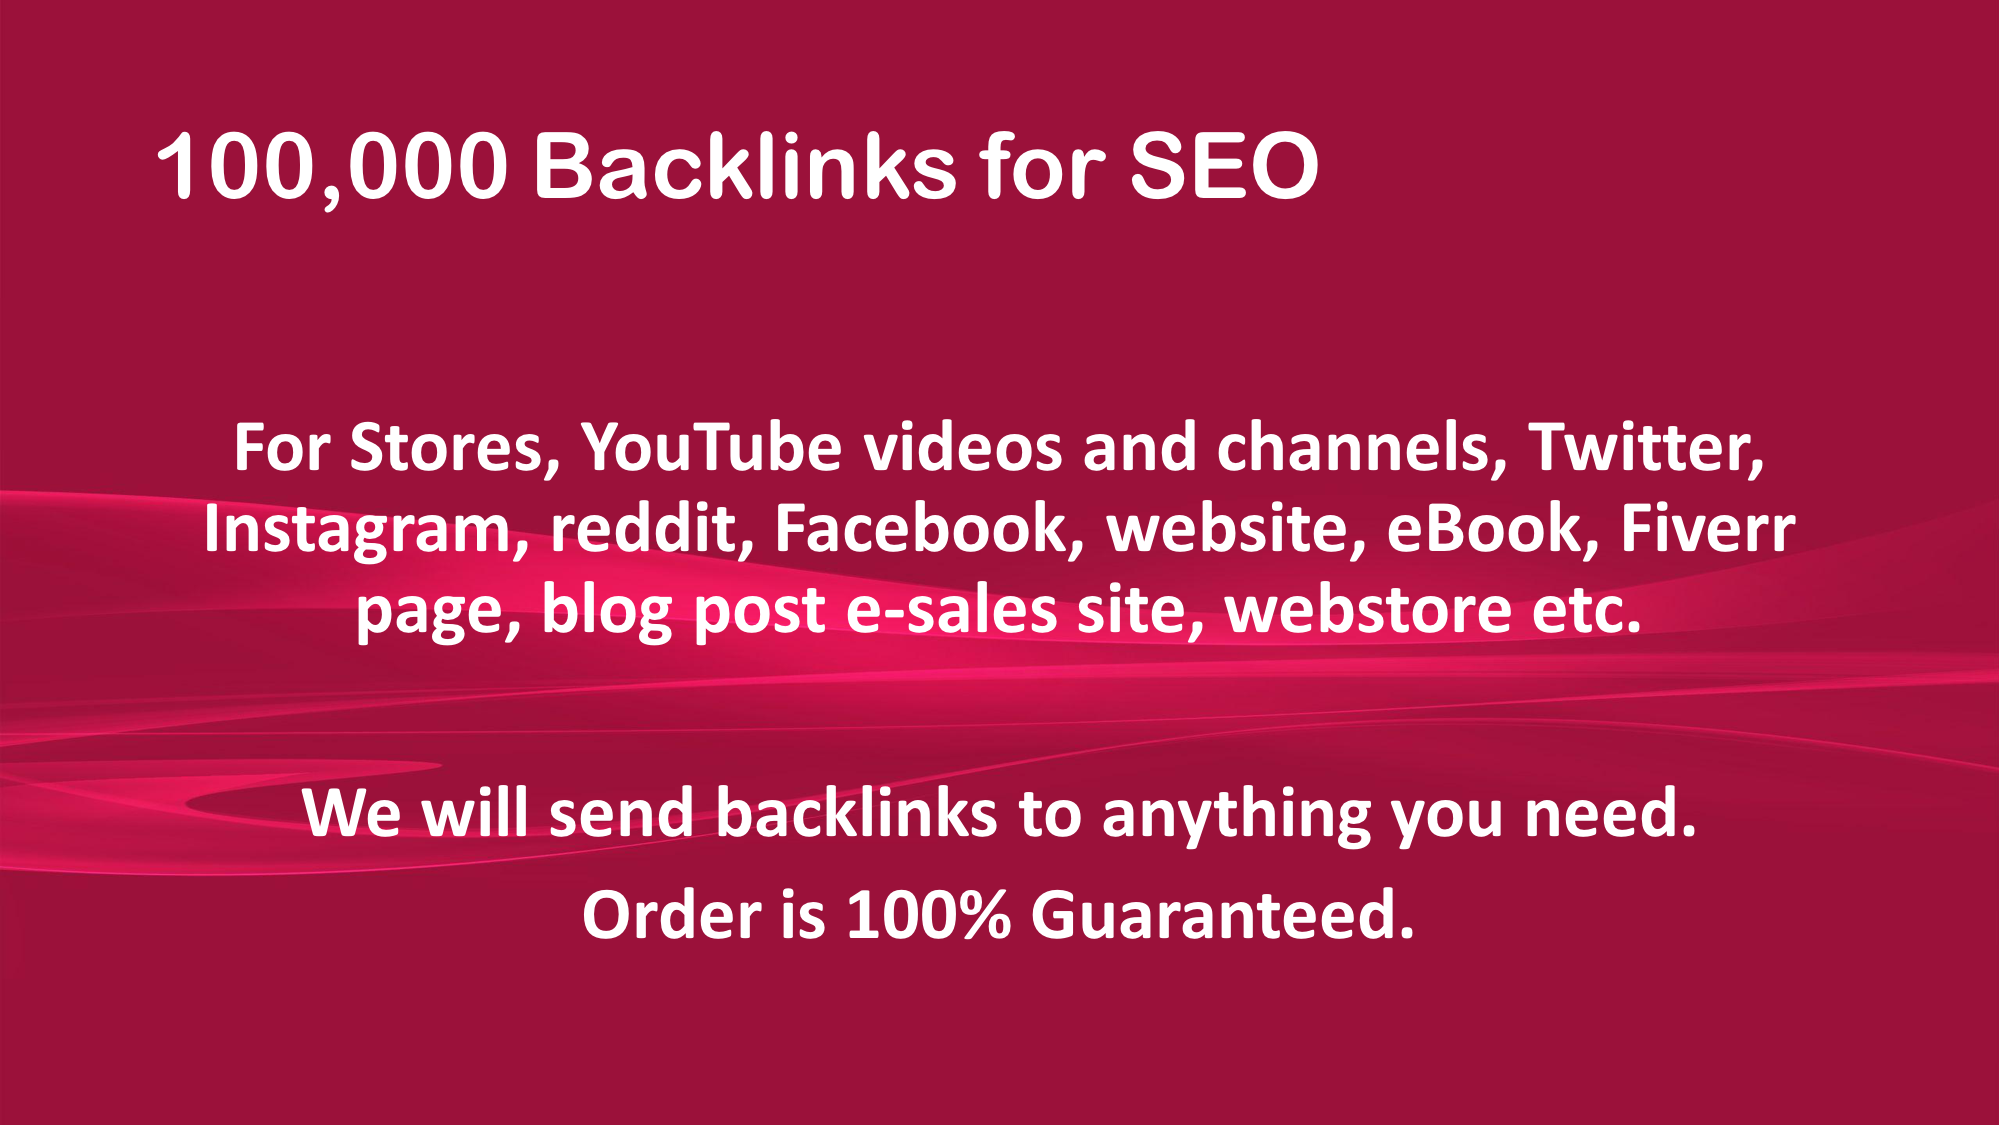 100,000 High Quality Backlinks for SEO